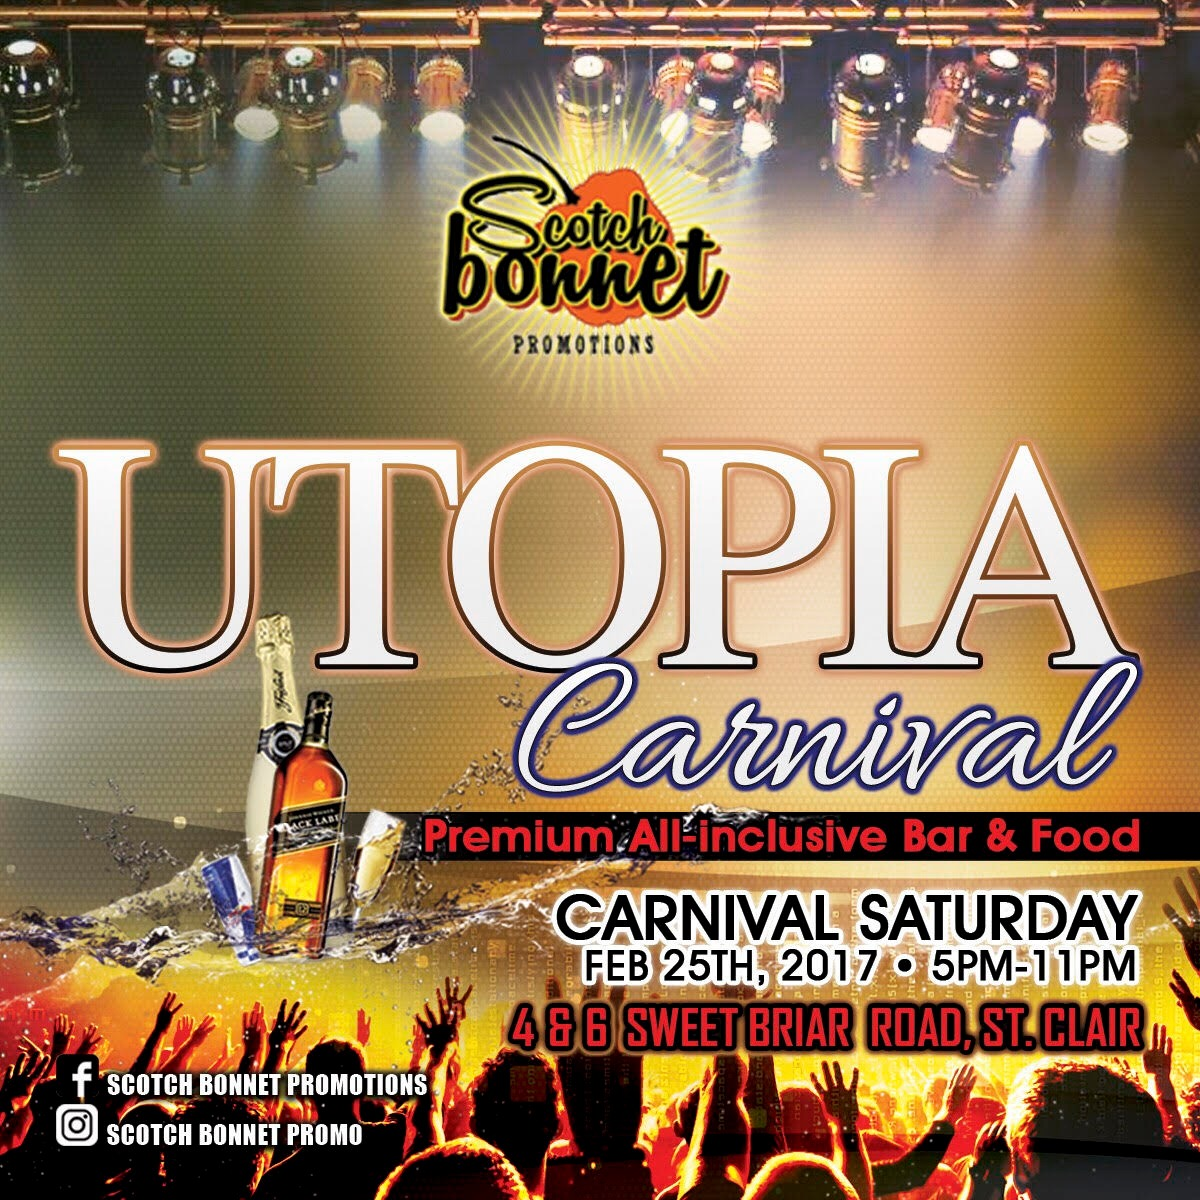 Utopia Carnival - All Inclusive 2017